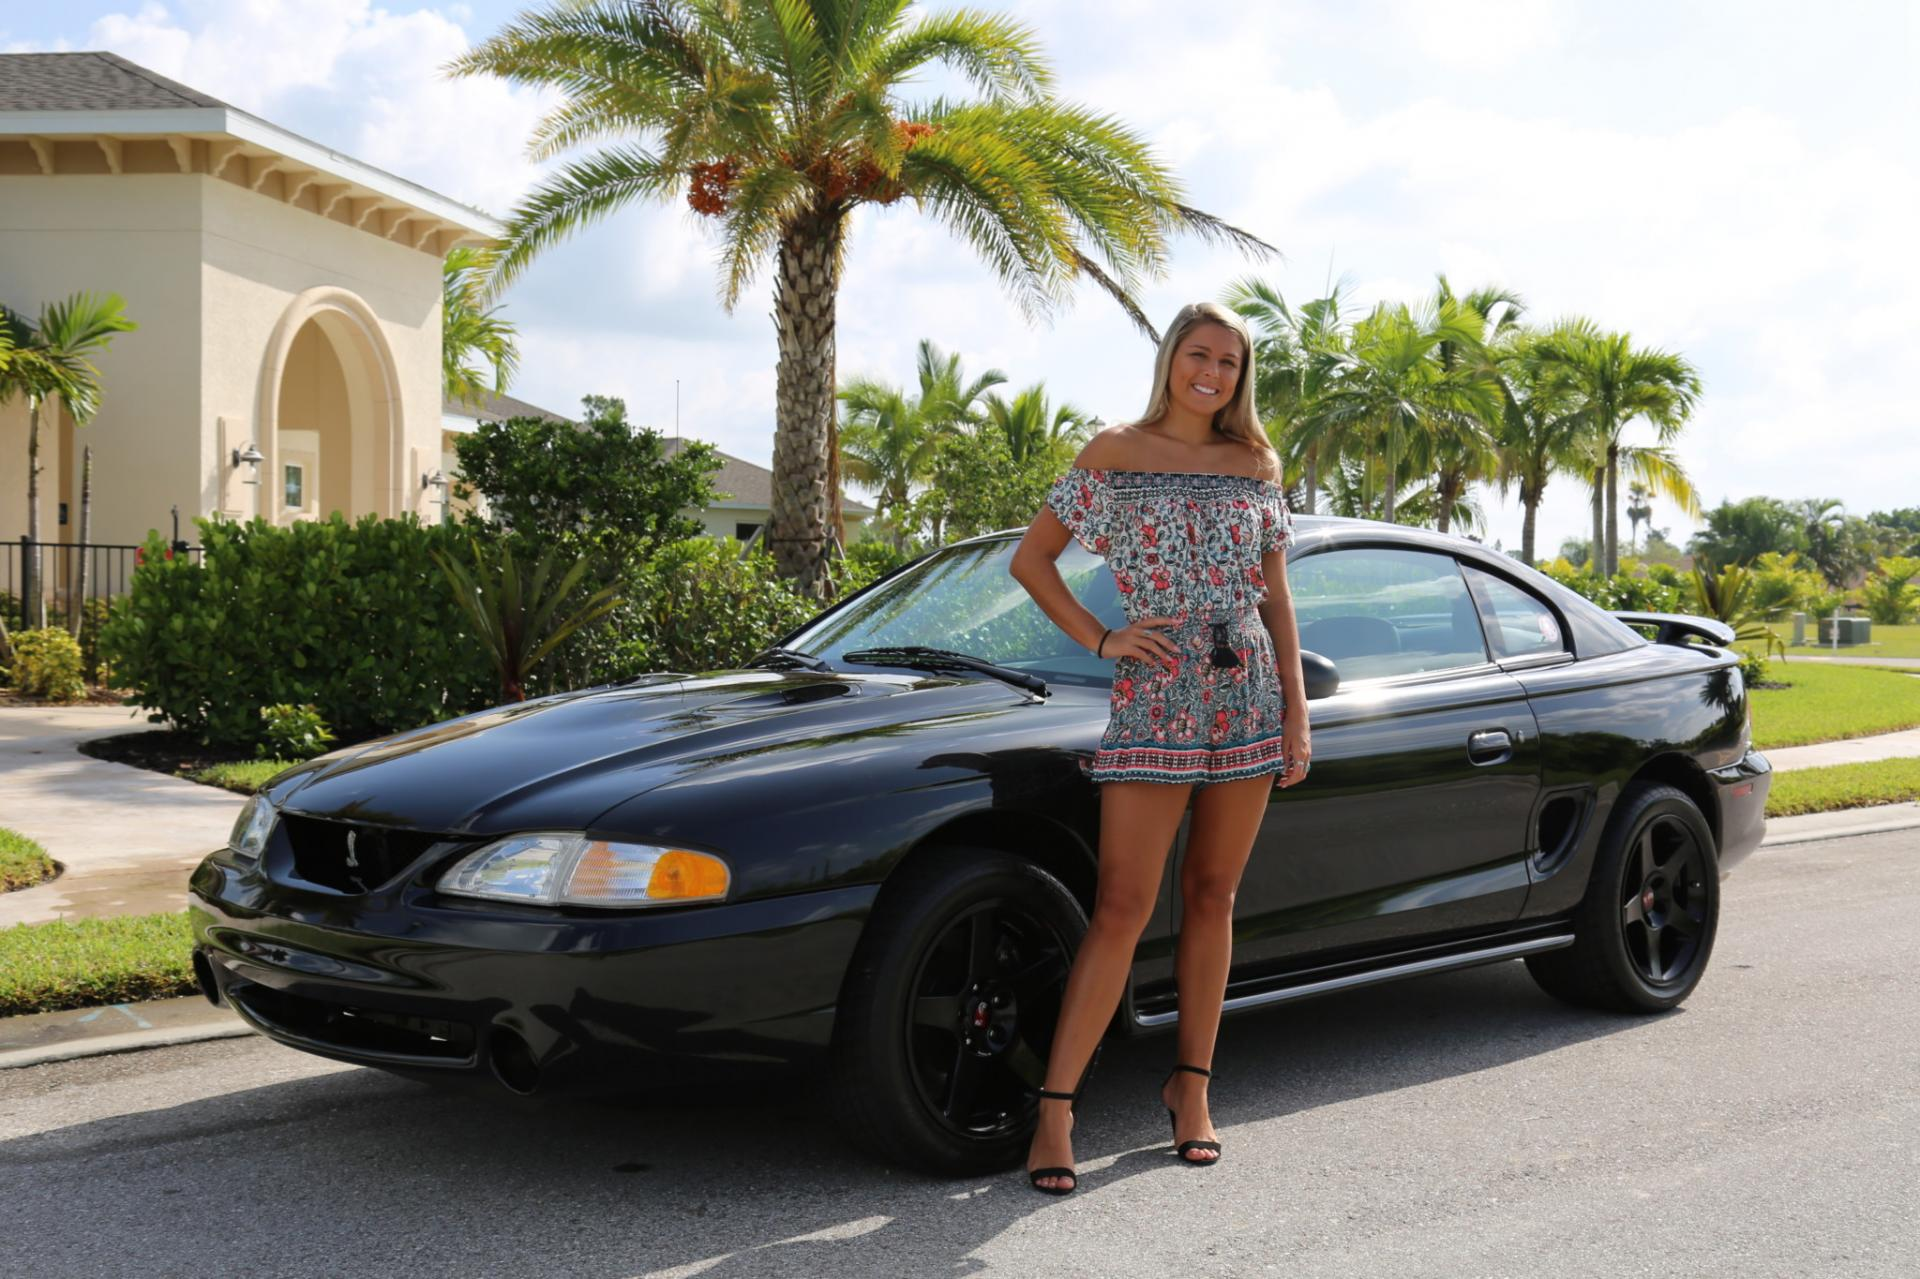 Used 1996 Mustang Cobra SVT for sale $22,500 at Muscle Cars for Sale Inc. in Fort Myers FL 33912 1